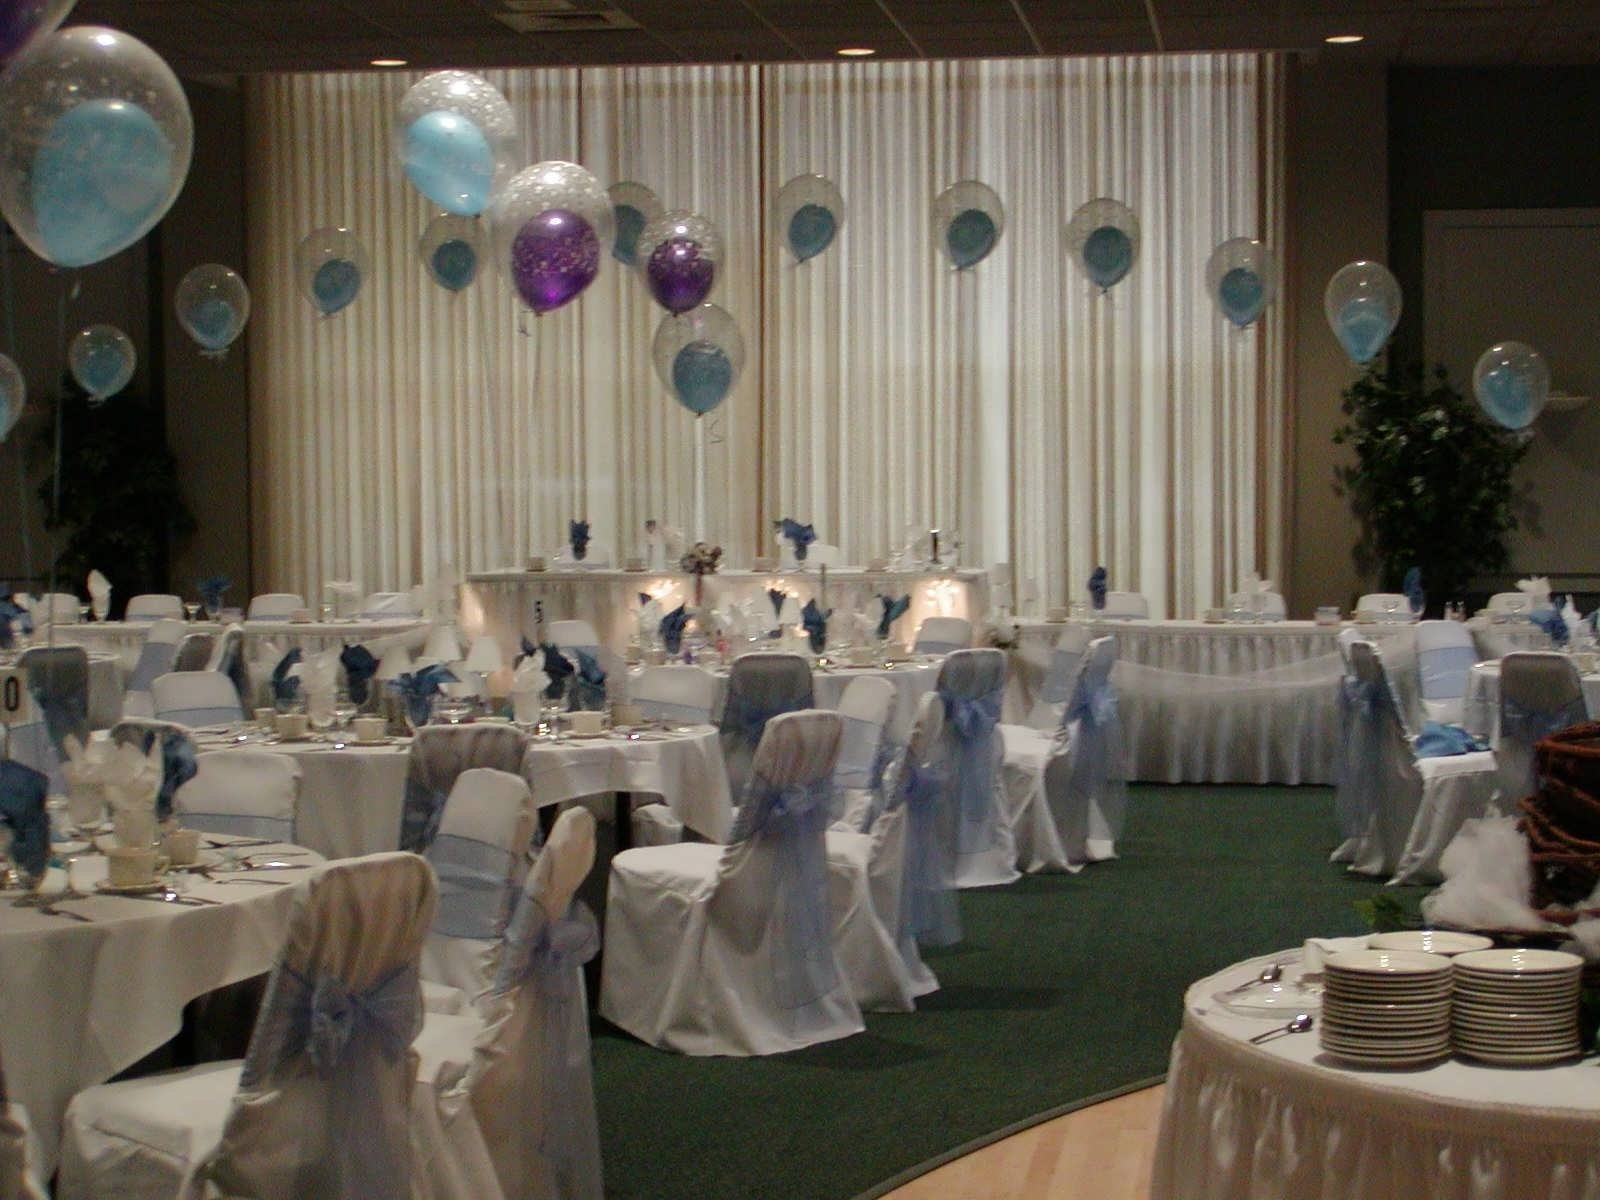 10 Famous 25 Year Anniversary Party Ideas low budget 50th wedding anniversary party ideas www aiboulder